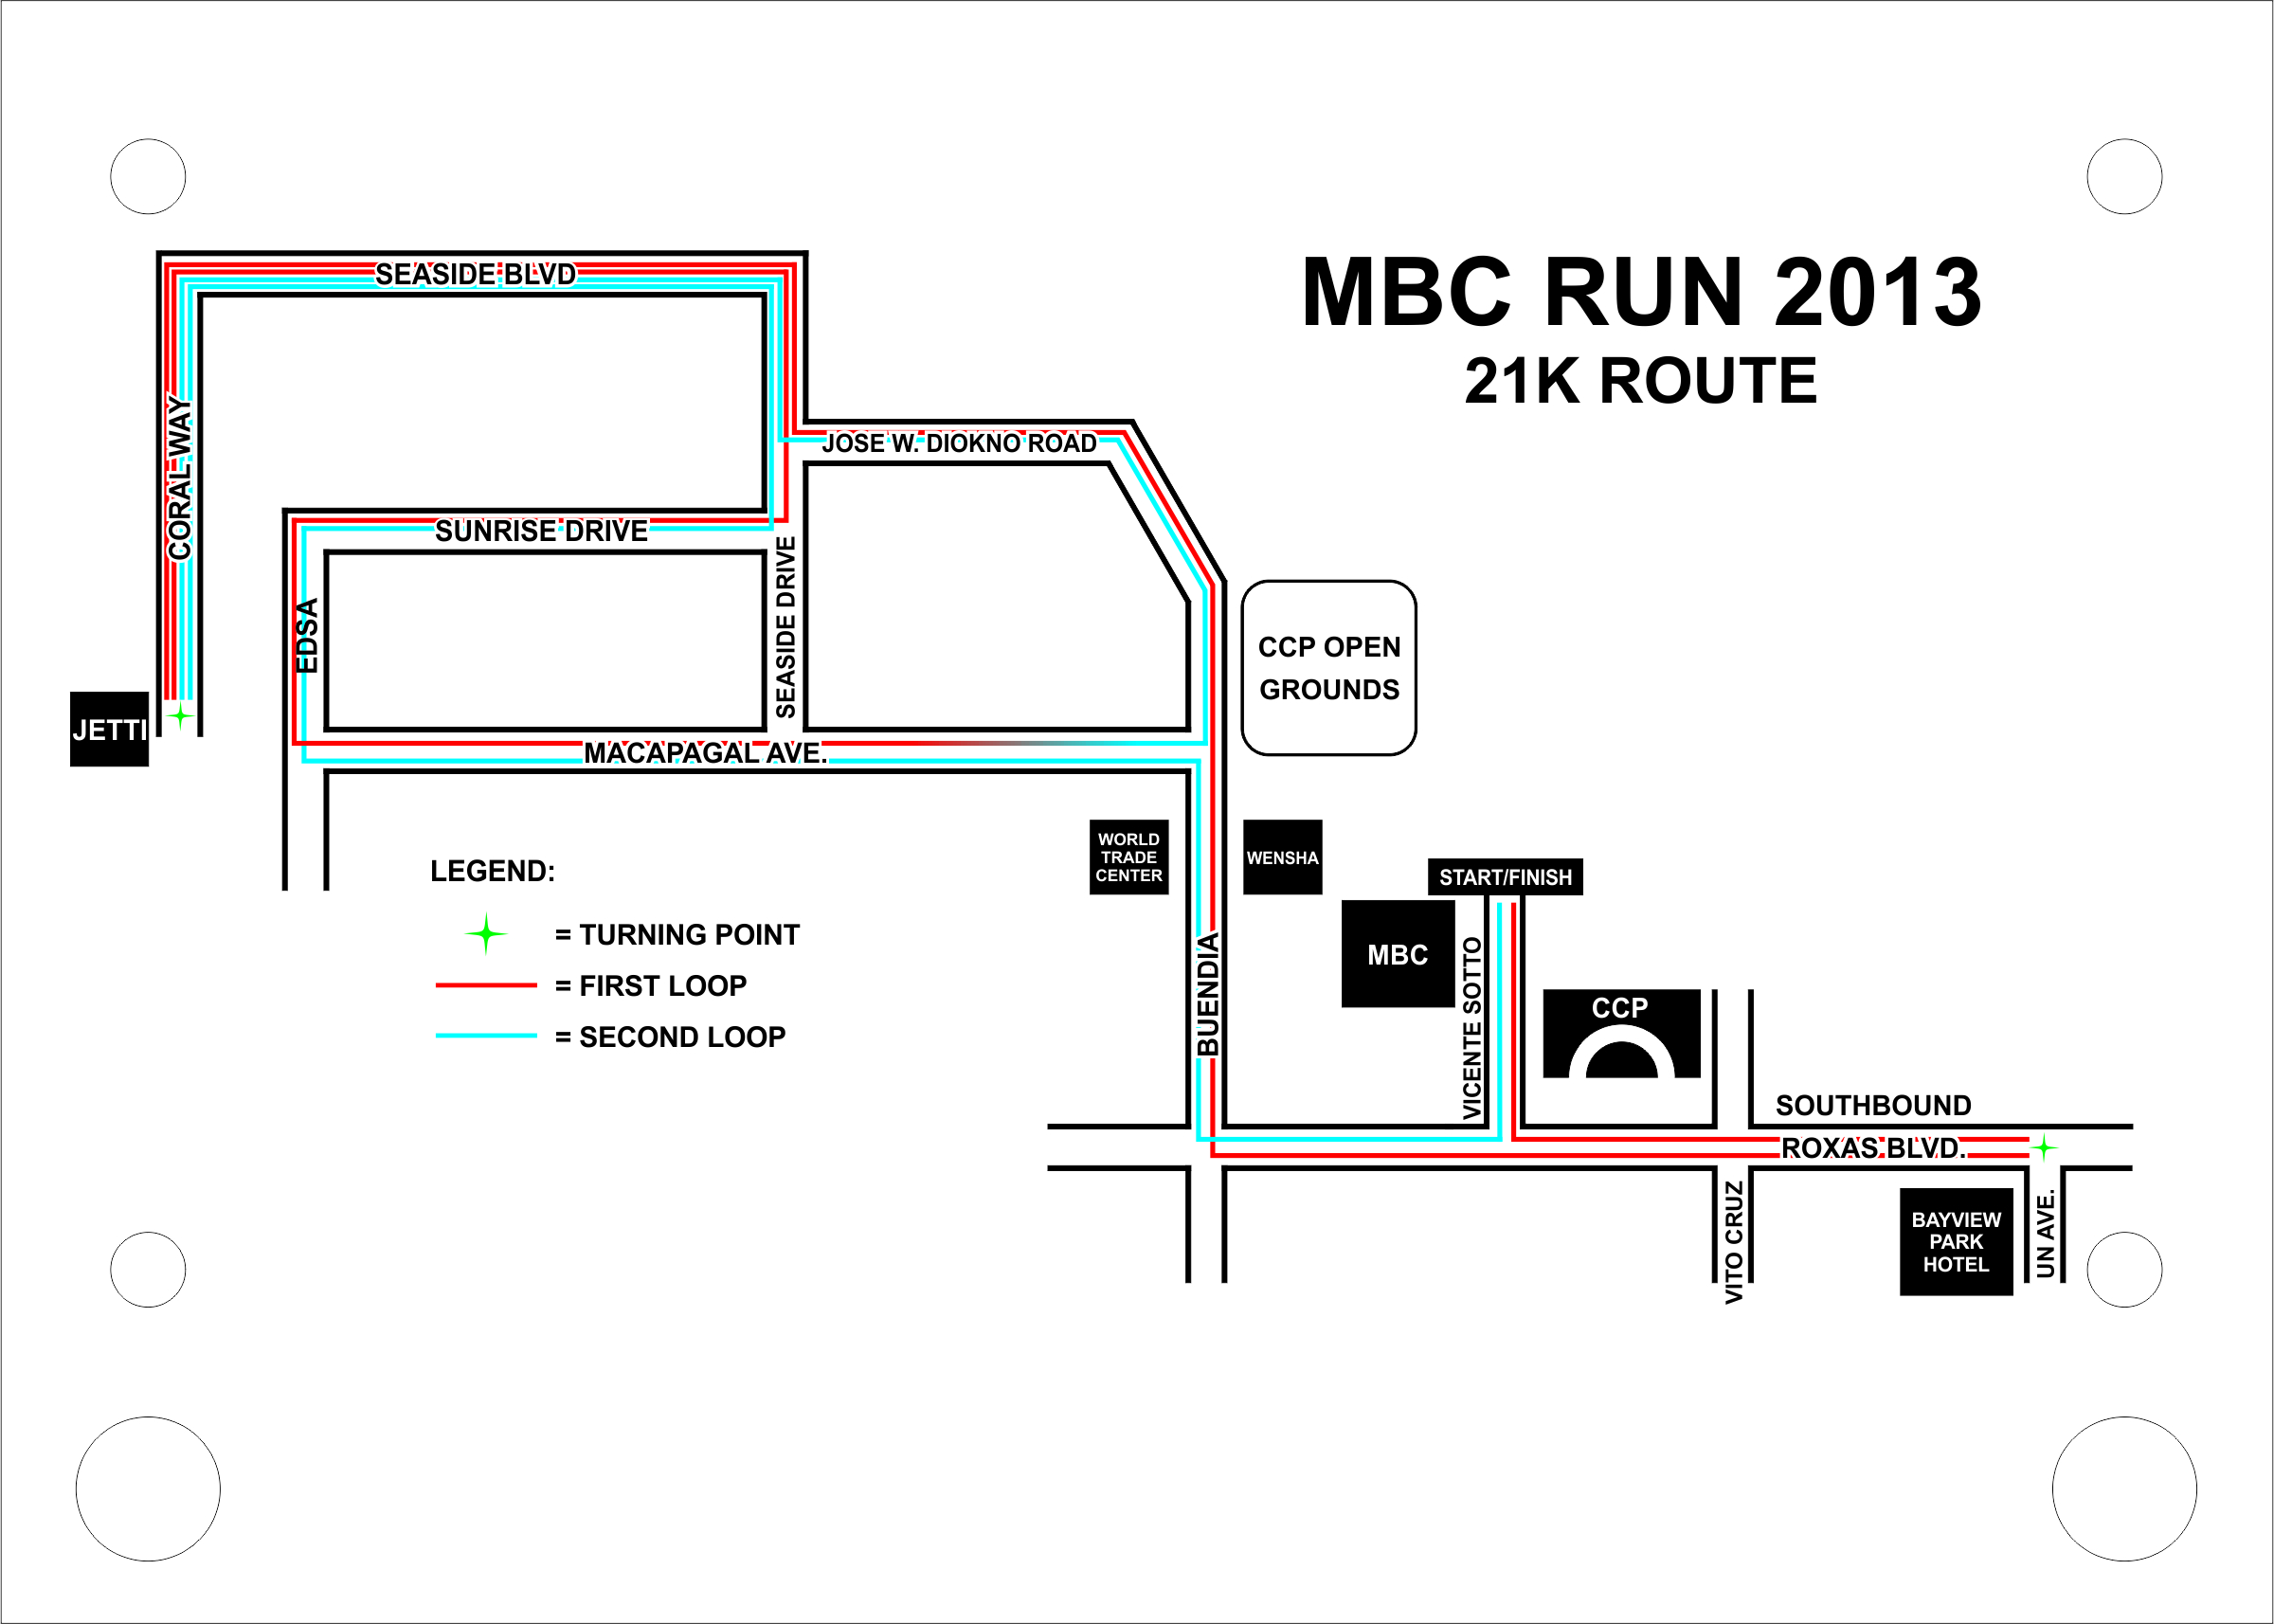 manila-bay-clean-up-run-2013-route-map-21k